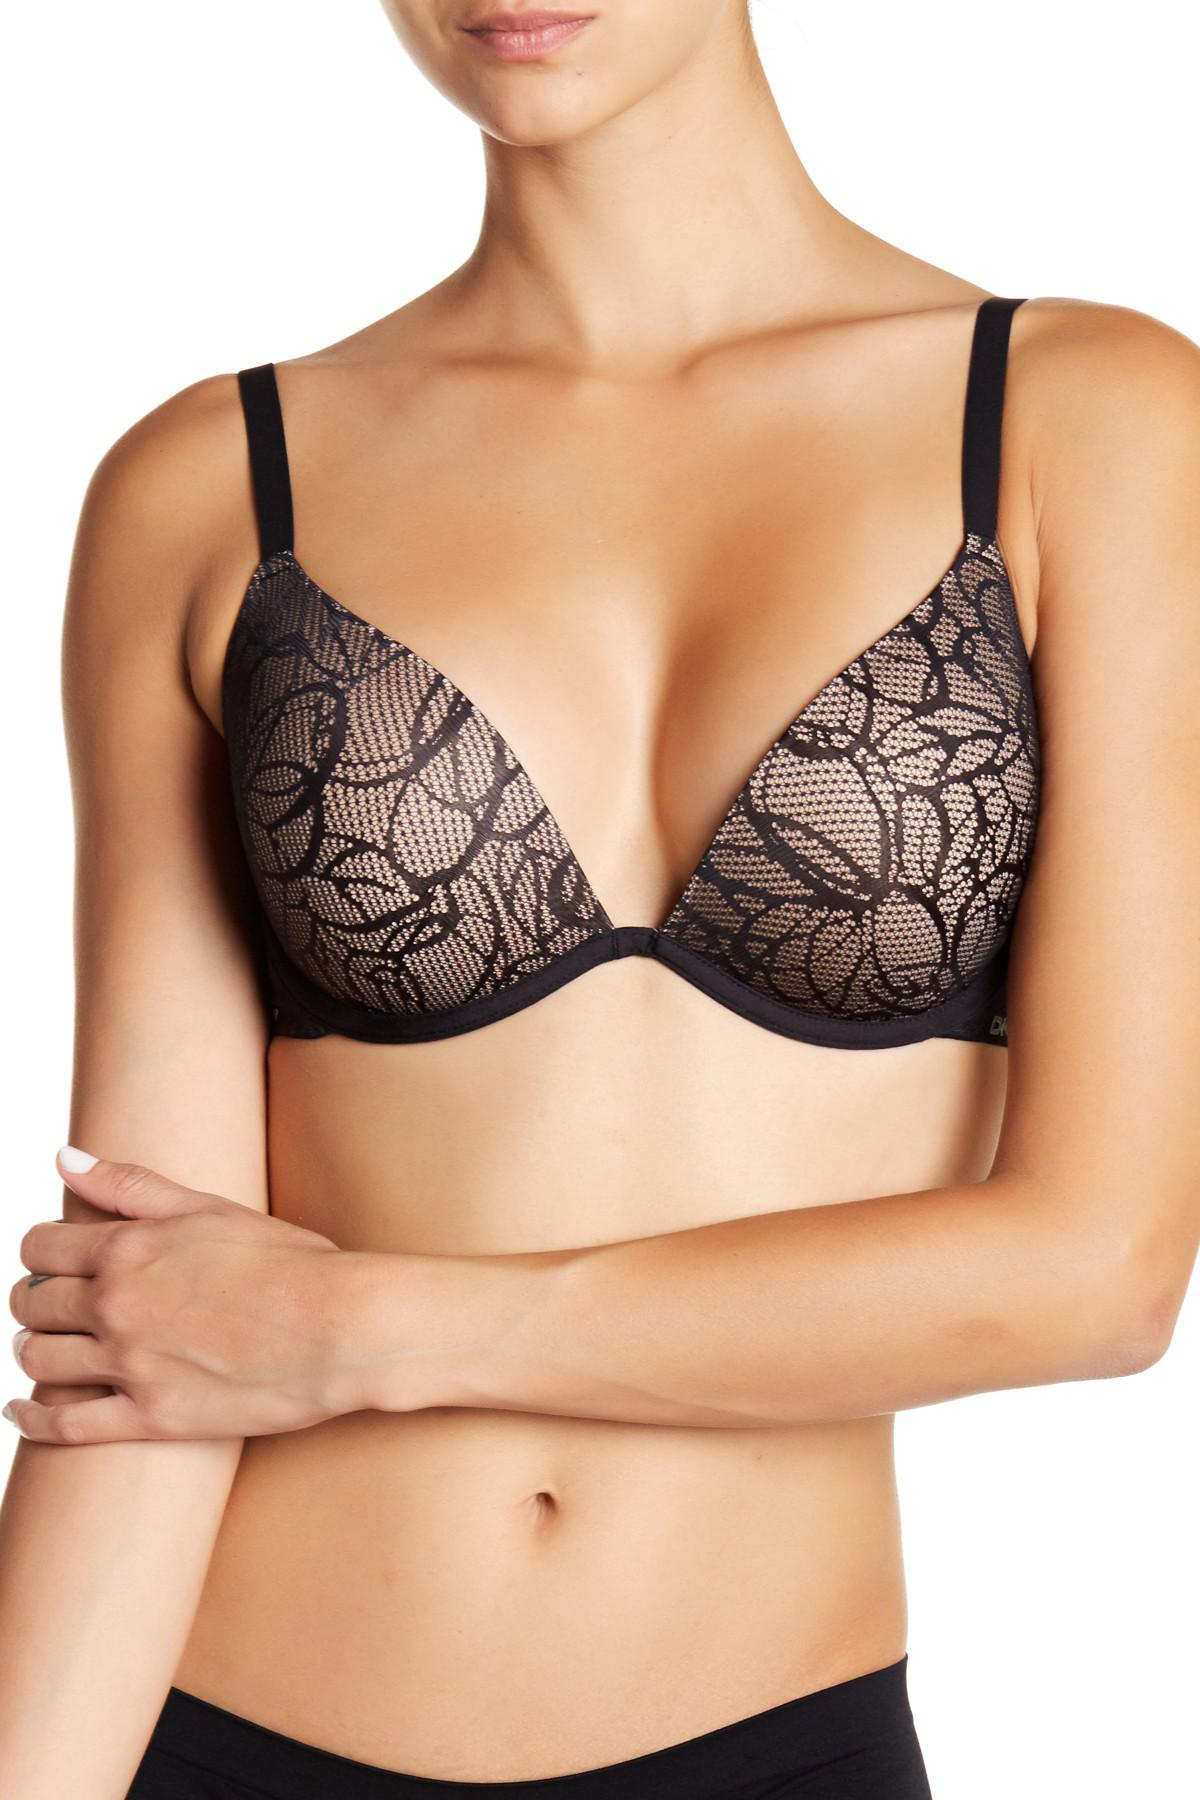 b0a574297bda7 Lyst - DKNY Signature Plunge Push-up Bra in Black